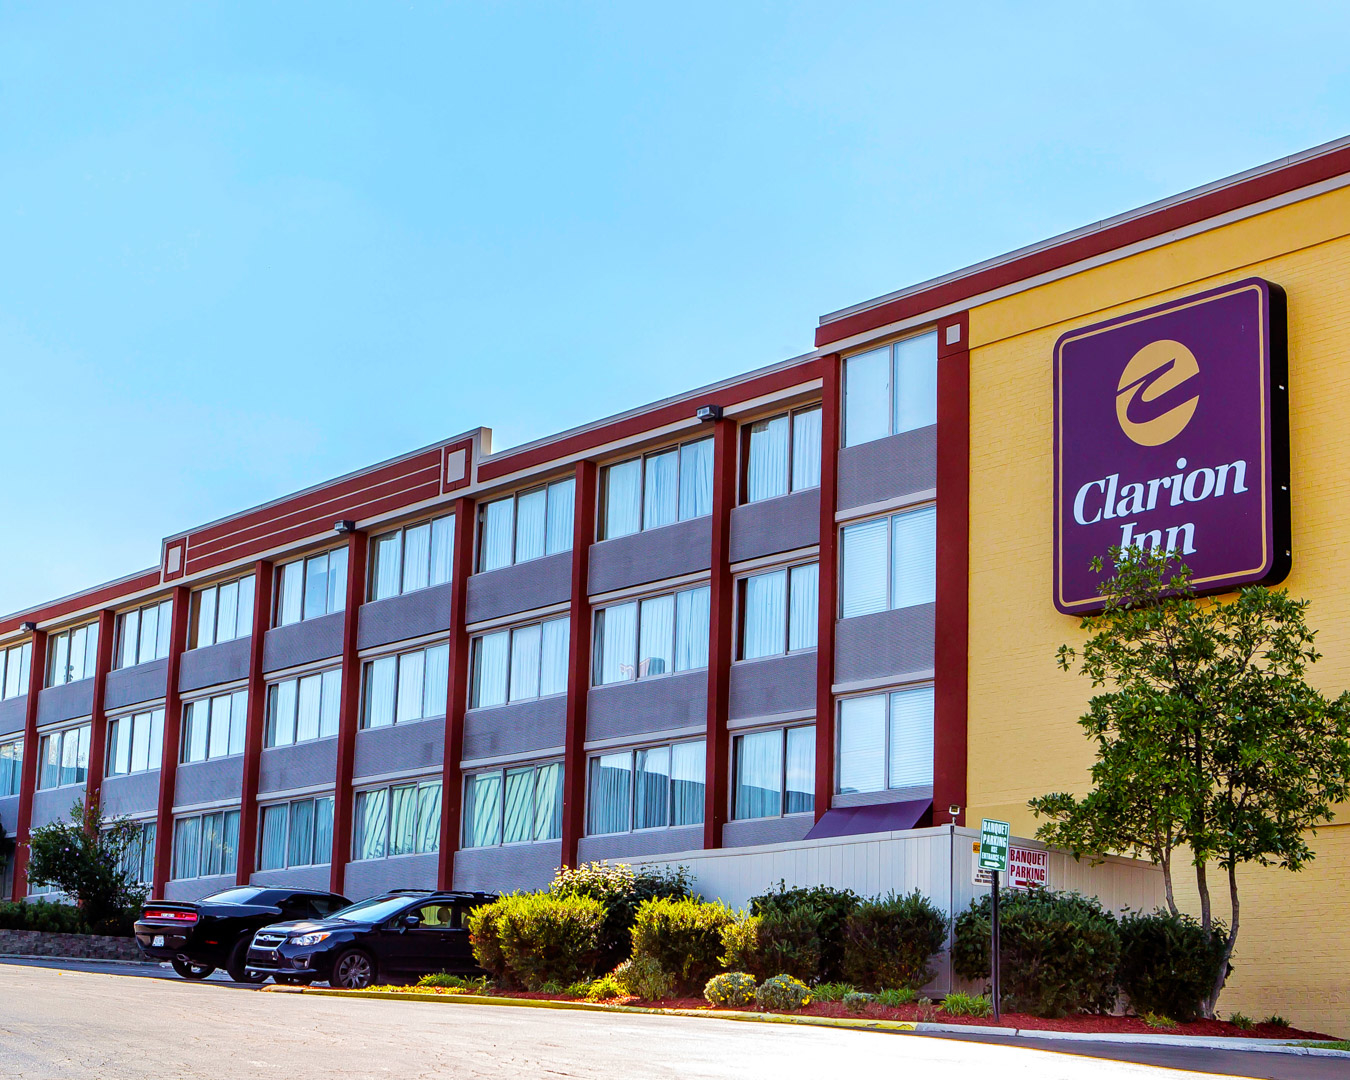 Clarion hotel coupons